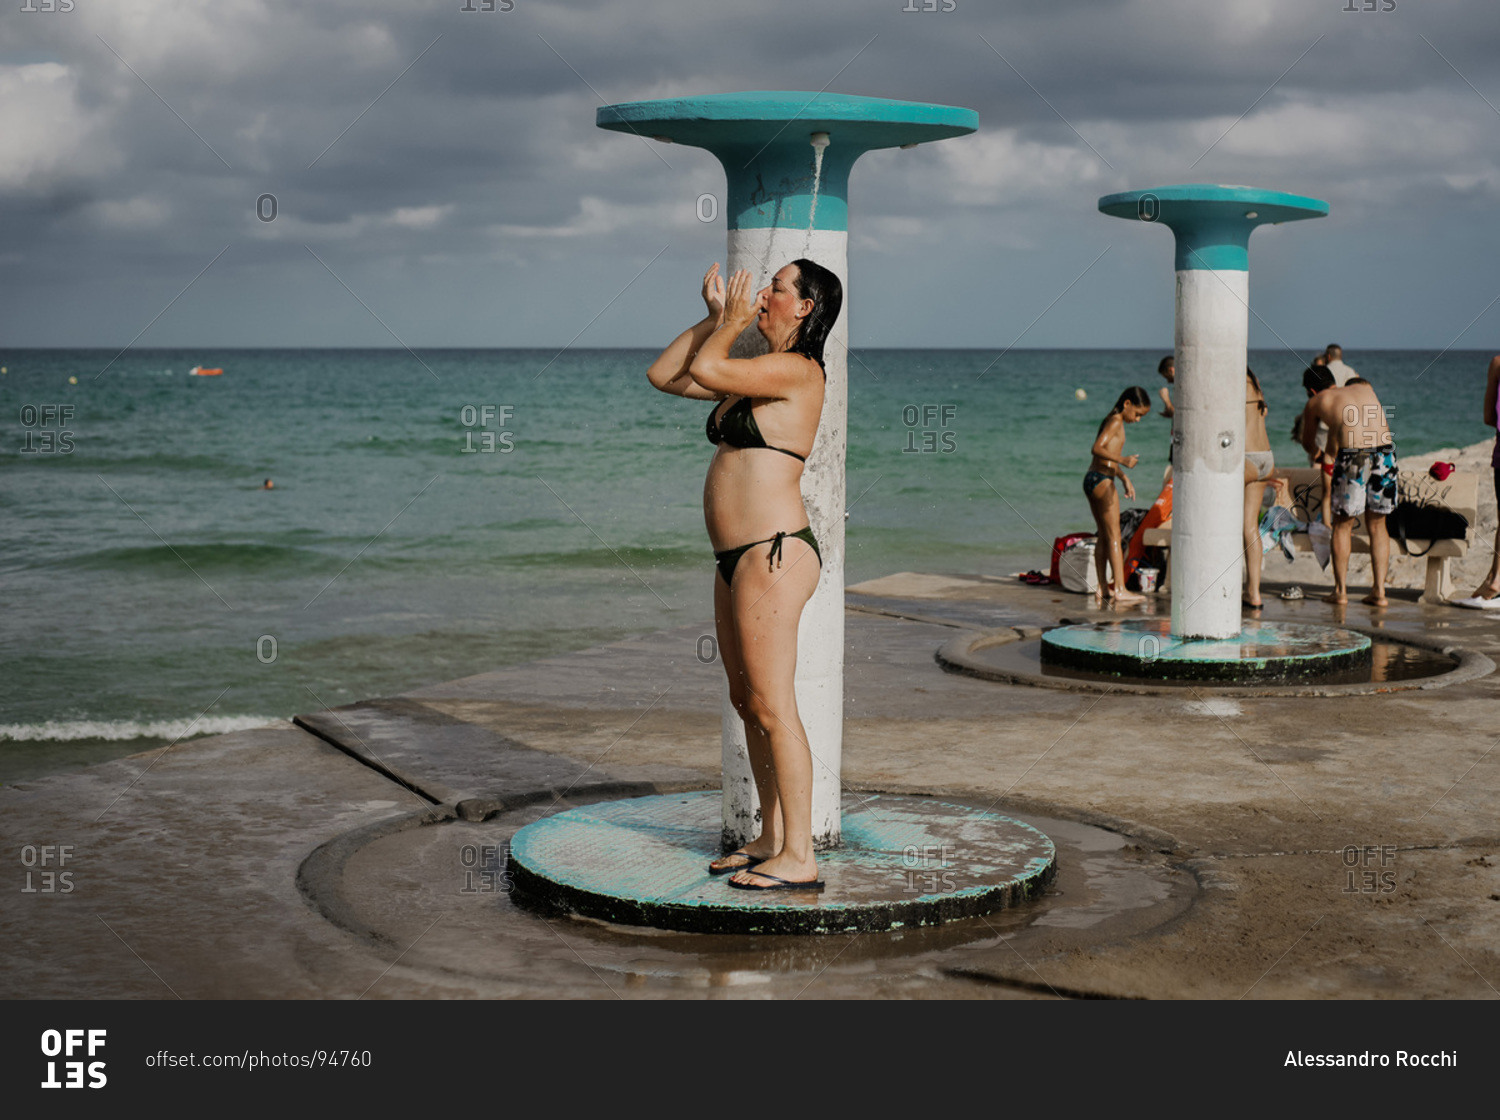 Summer vacation in the pictures of Alessandro Rocchi